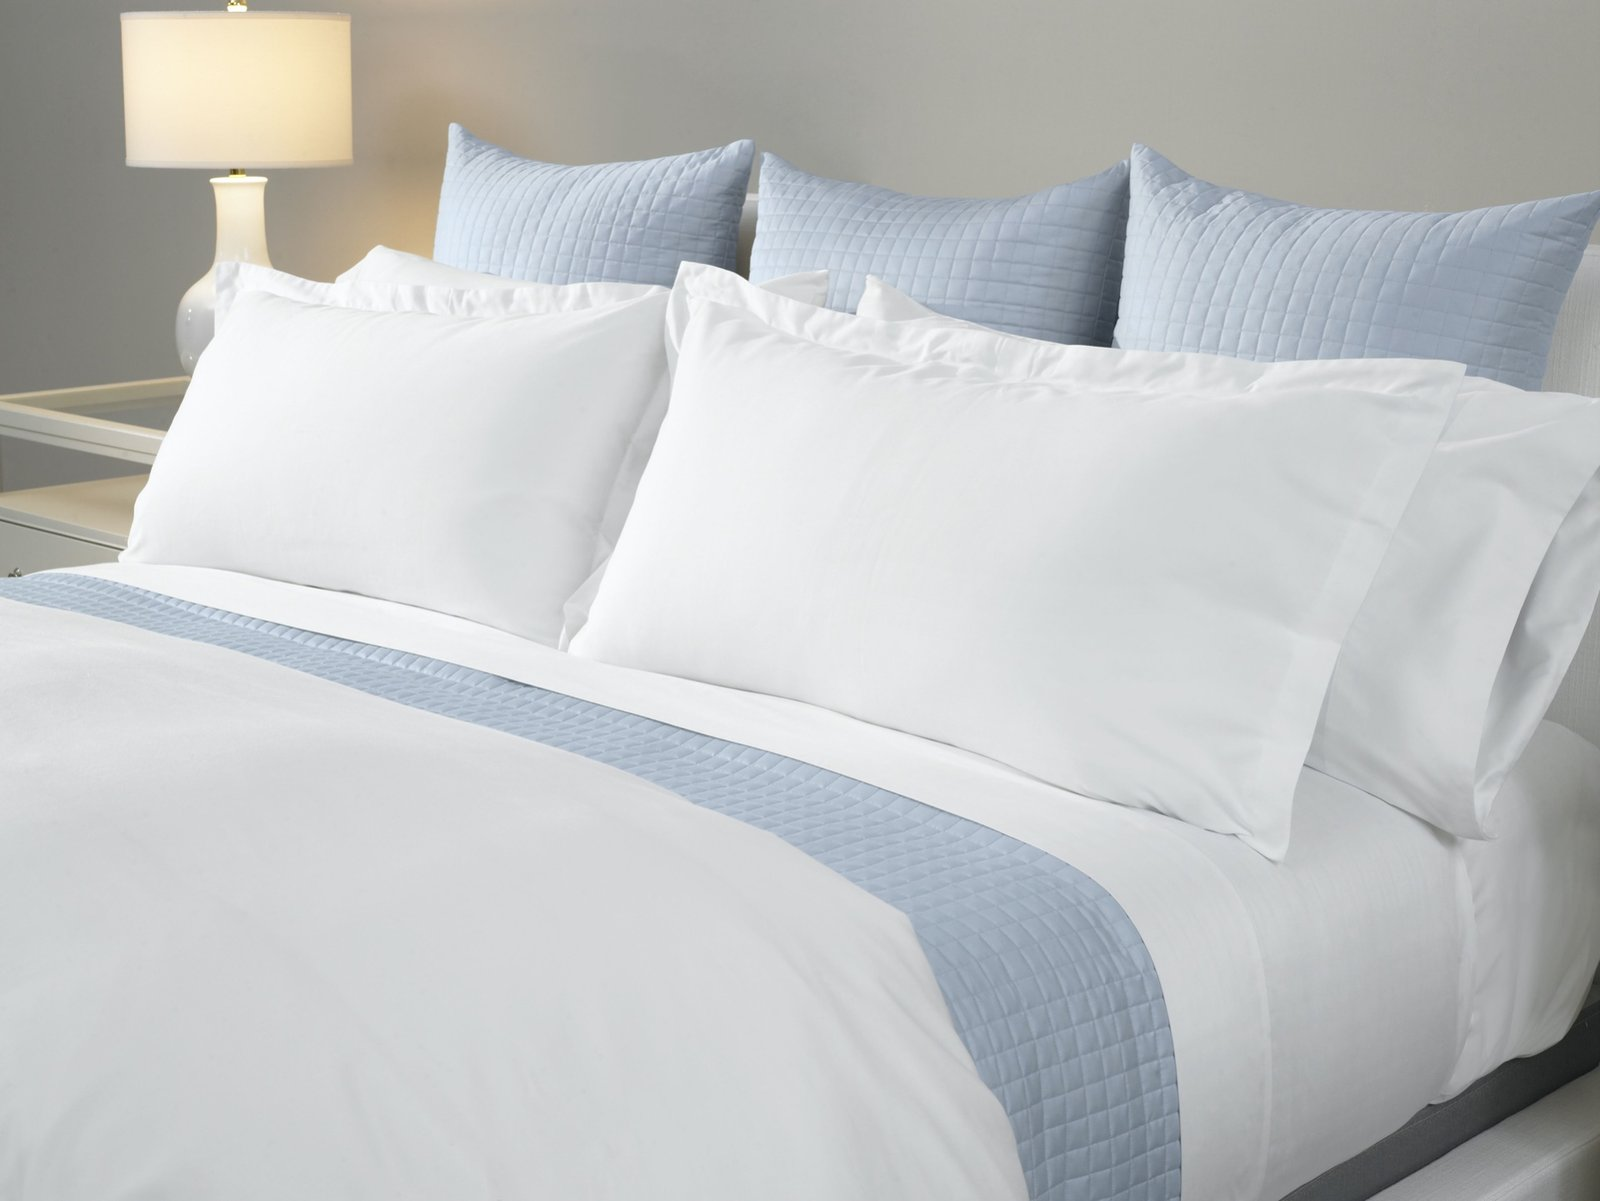 How often should you wash your bedsheets during virus season?